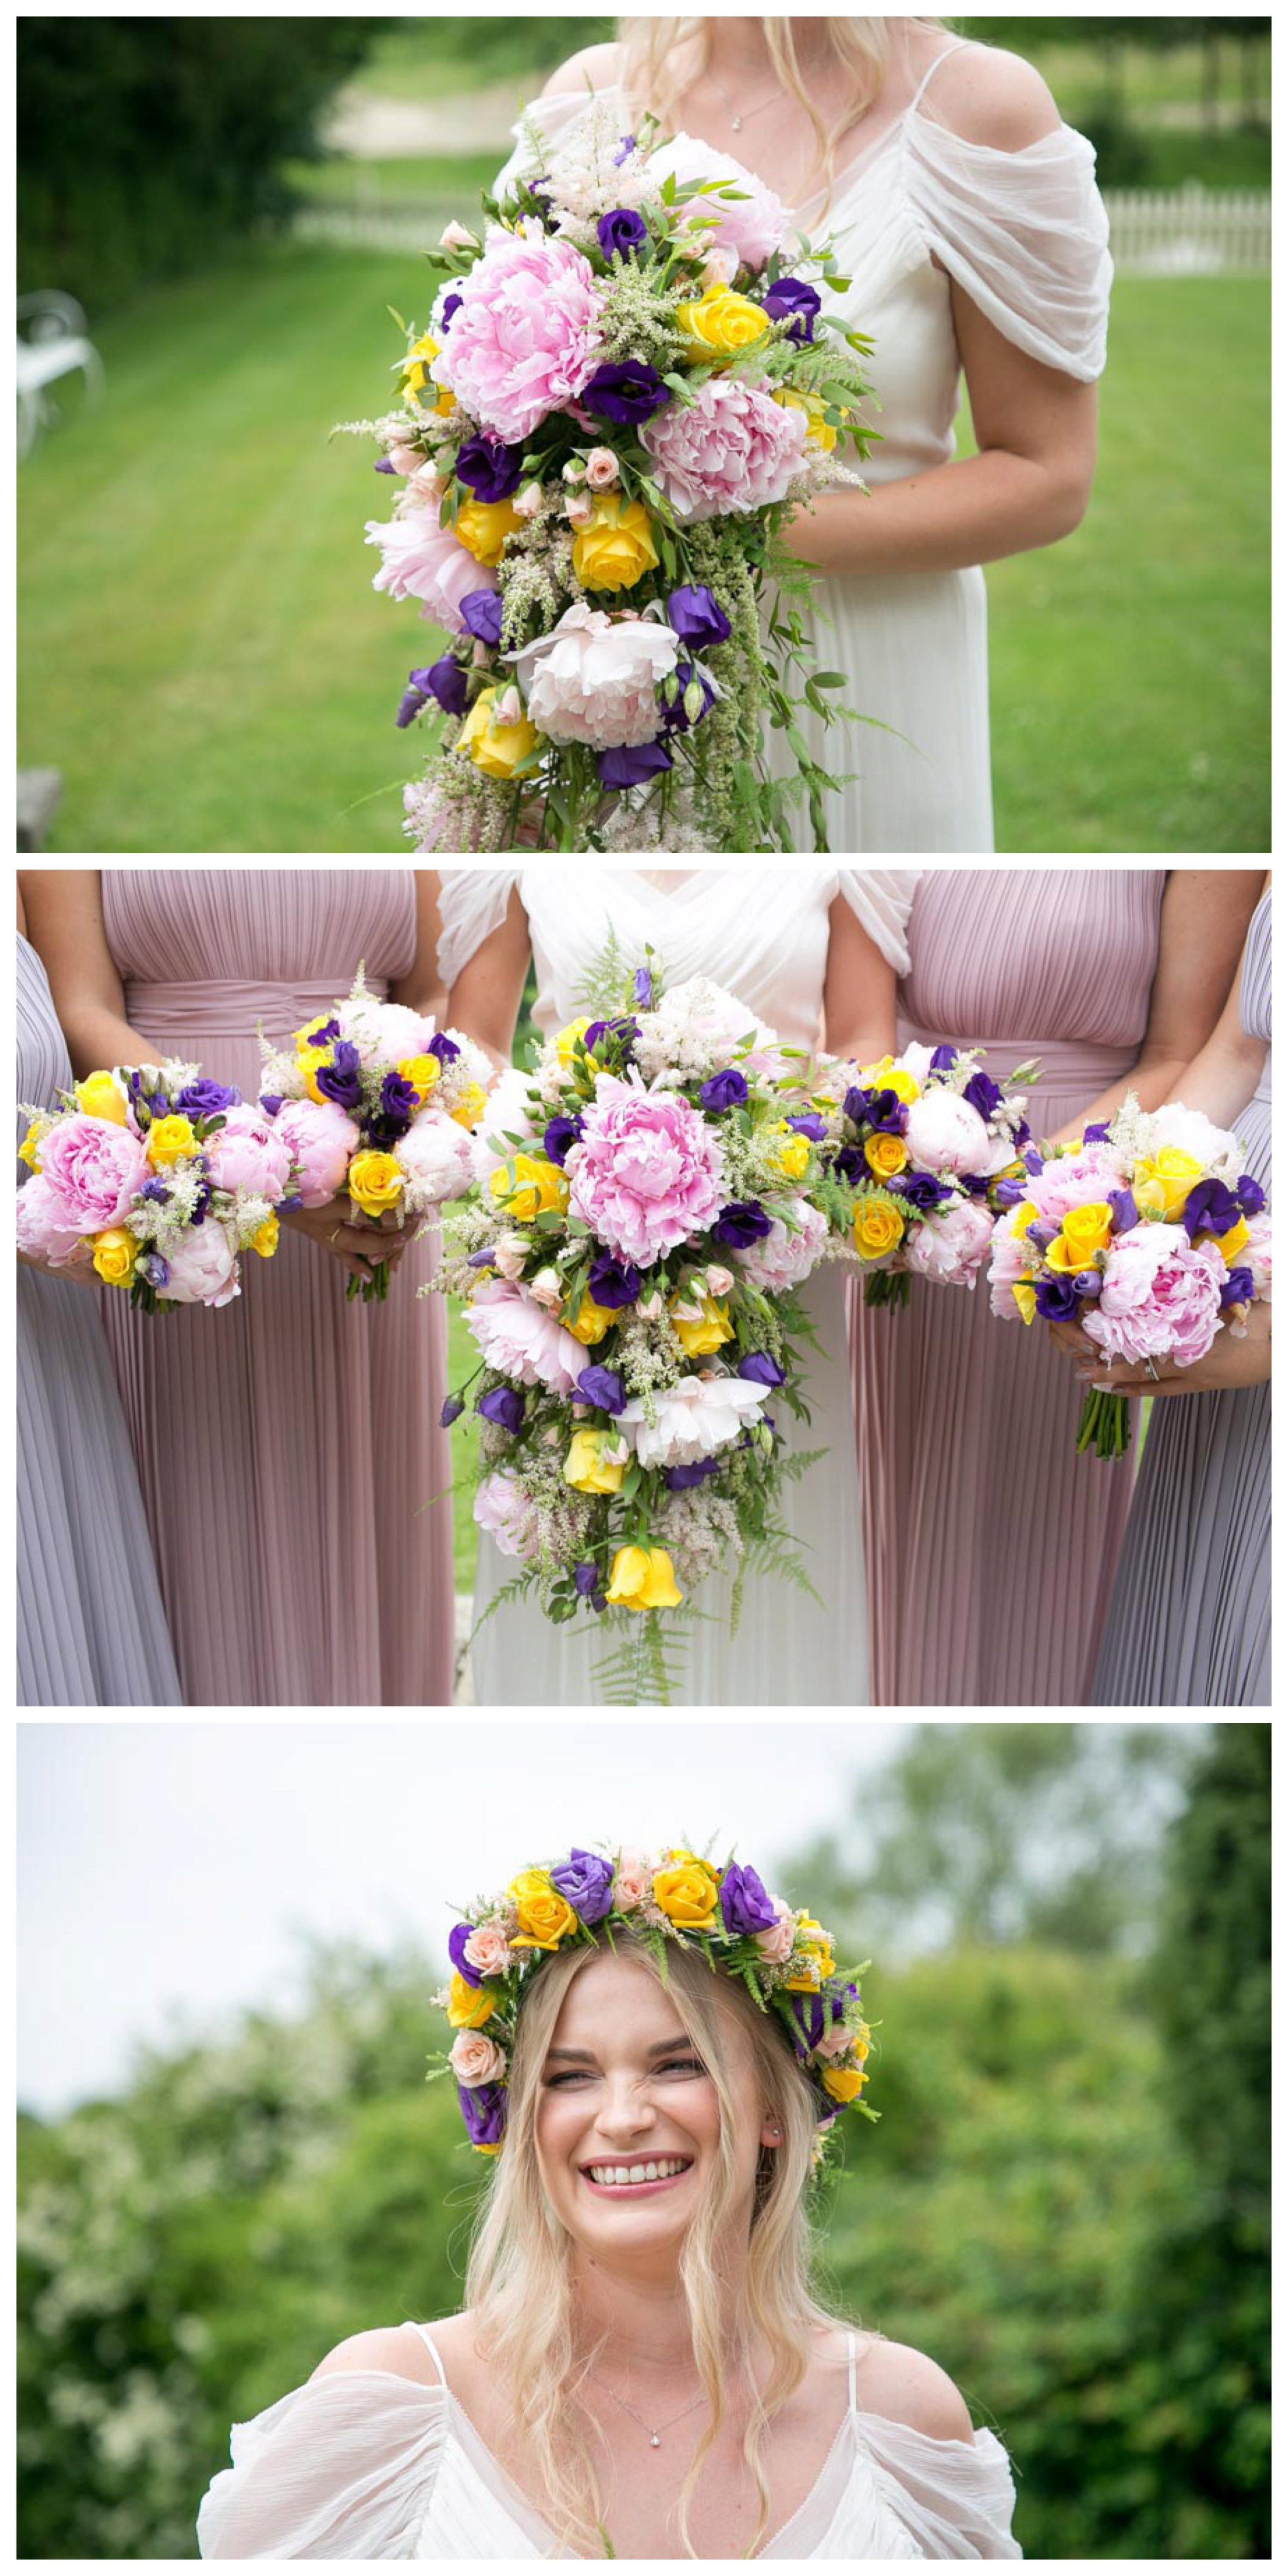 pink purple and yellow flowers in brides bouquet, bridesmaids holding flowrs, bride with flower crown